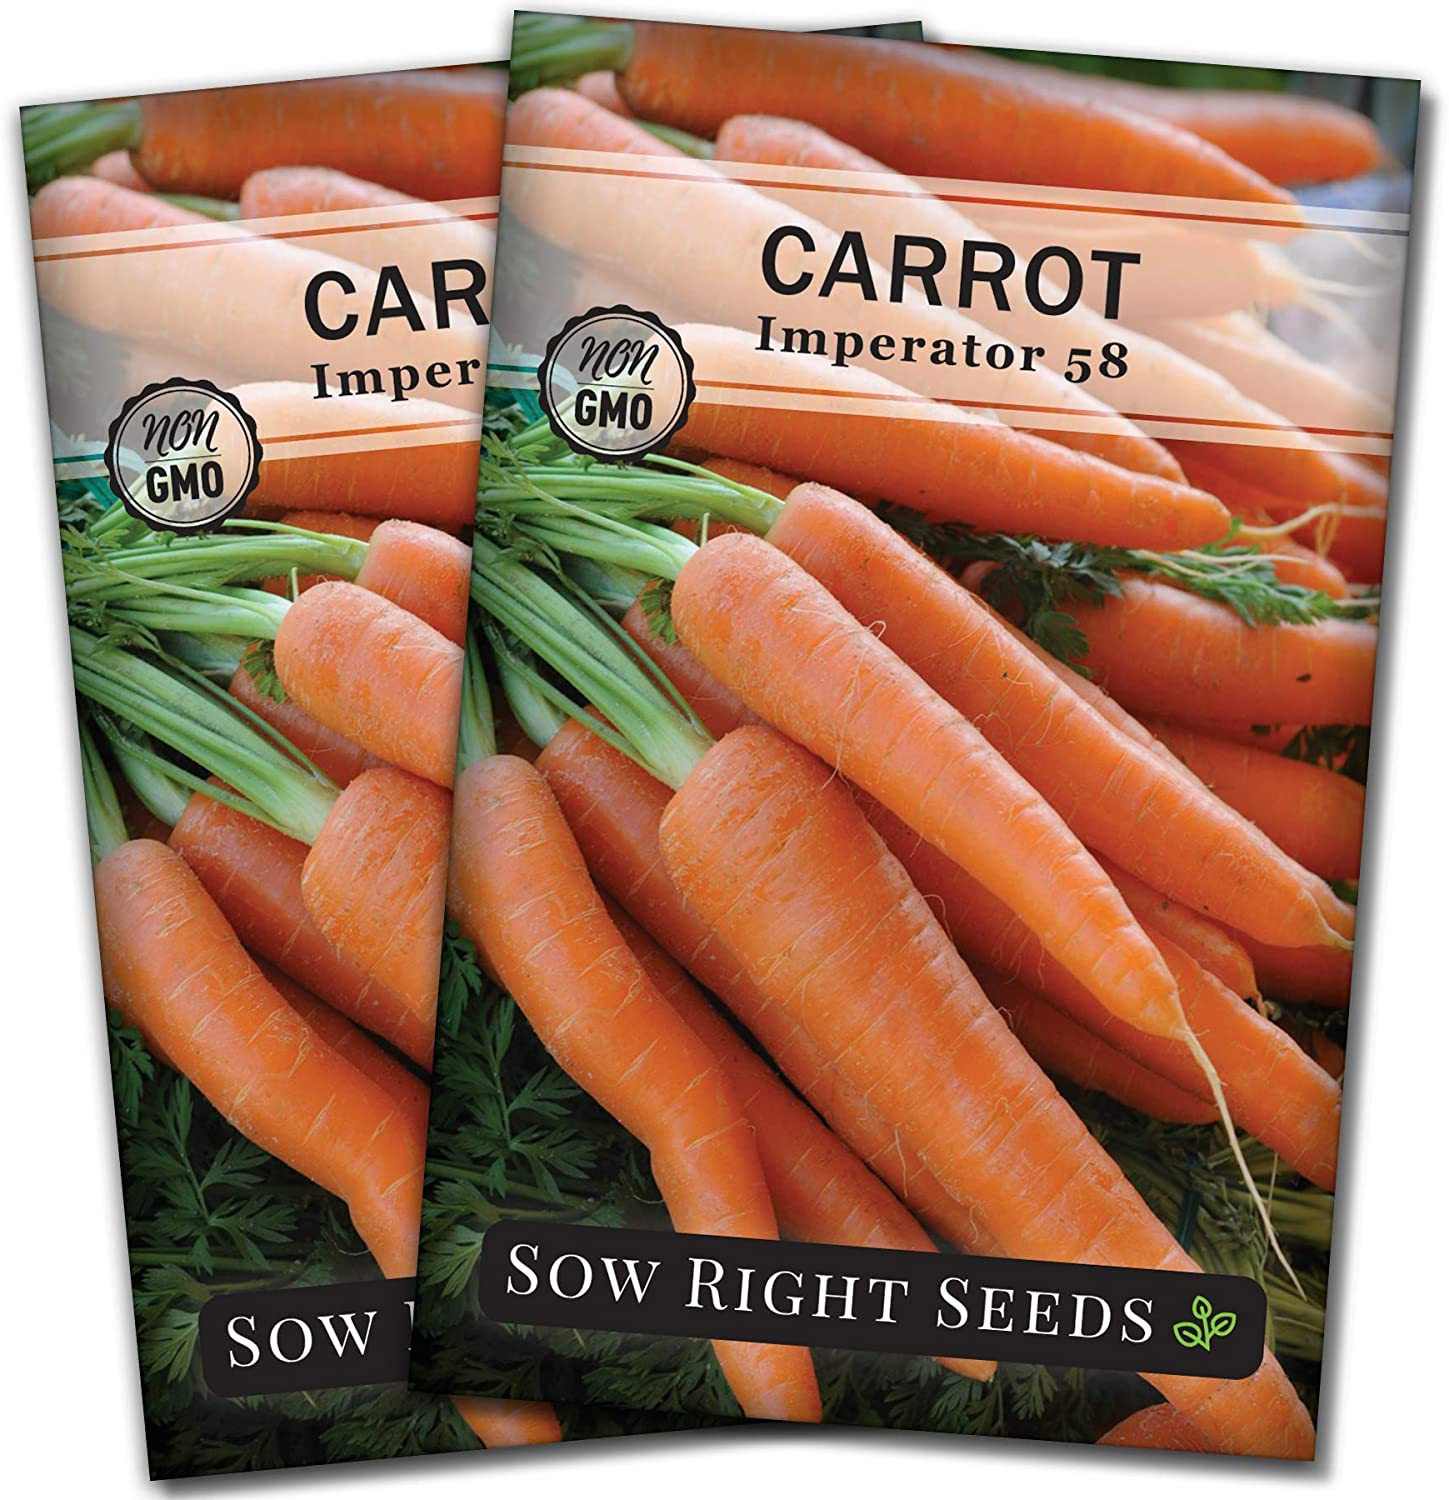 Amazon.com : Sow Right Seeds - Imperator 58 Carrot Seed for Planting -  Non-GMO Heirloom Packet with Instructions to Plant a Home Vegetable Garden,  Great Gardening Gift (1) : Garden & Outdoor